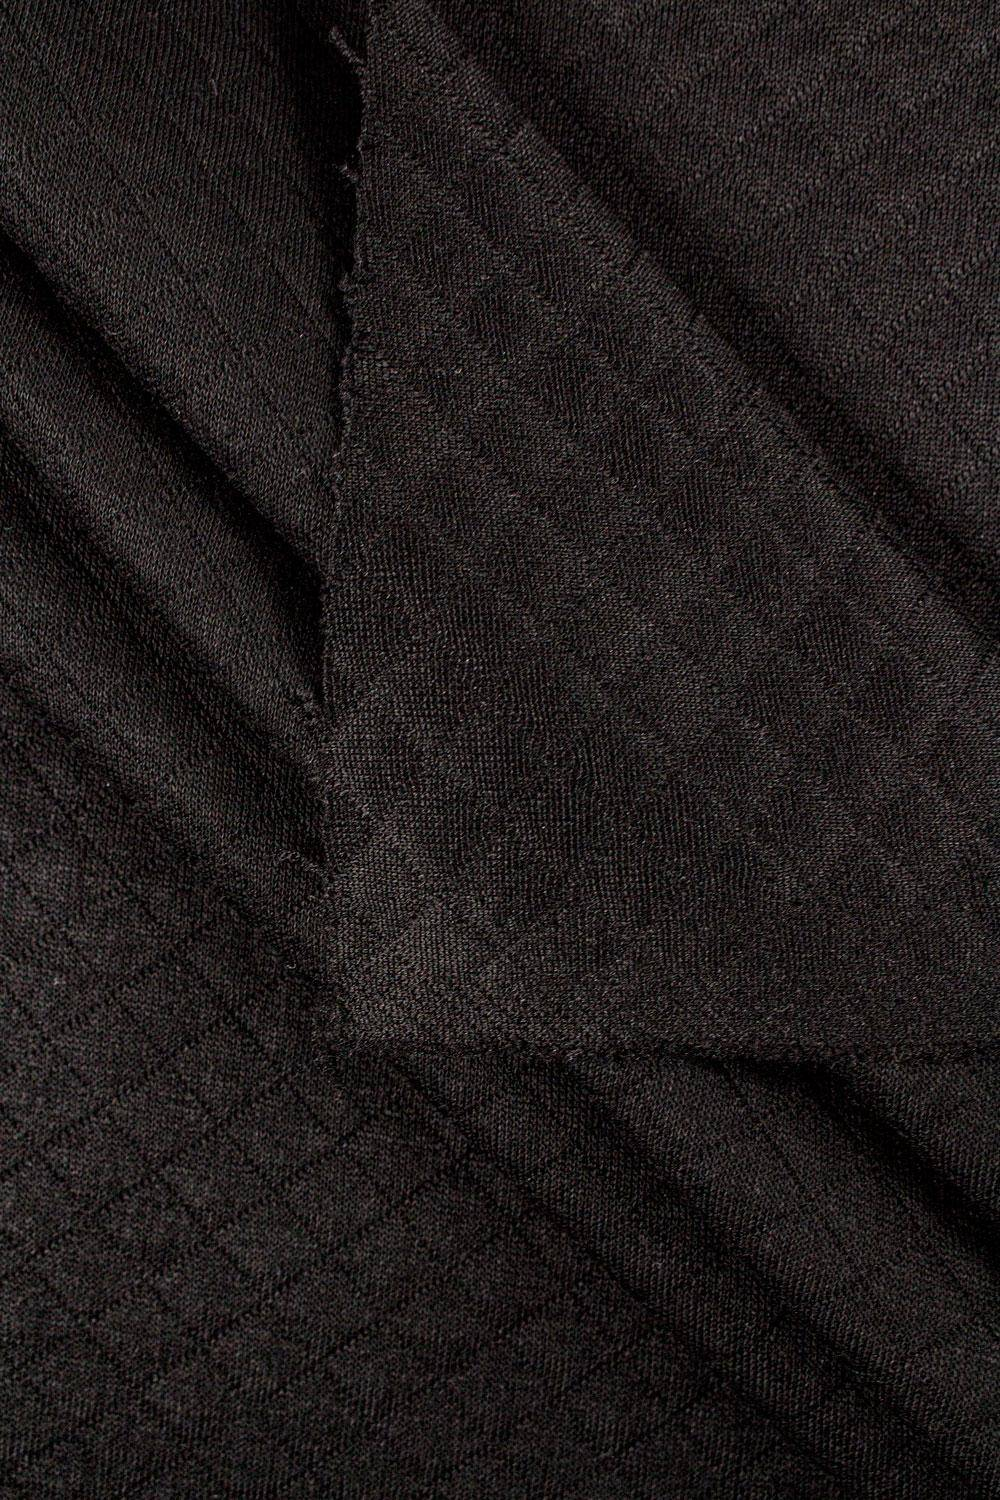 Knit - Quilted - Black - 155 cm - 340 g/m2